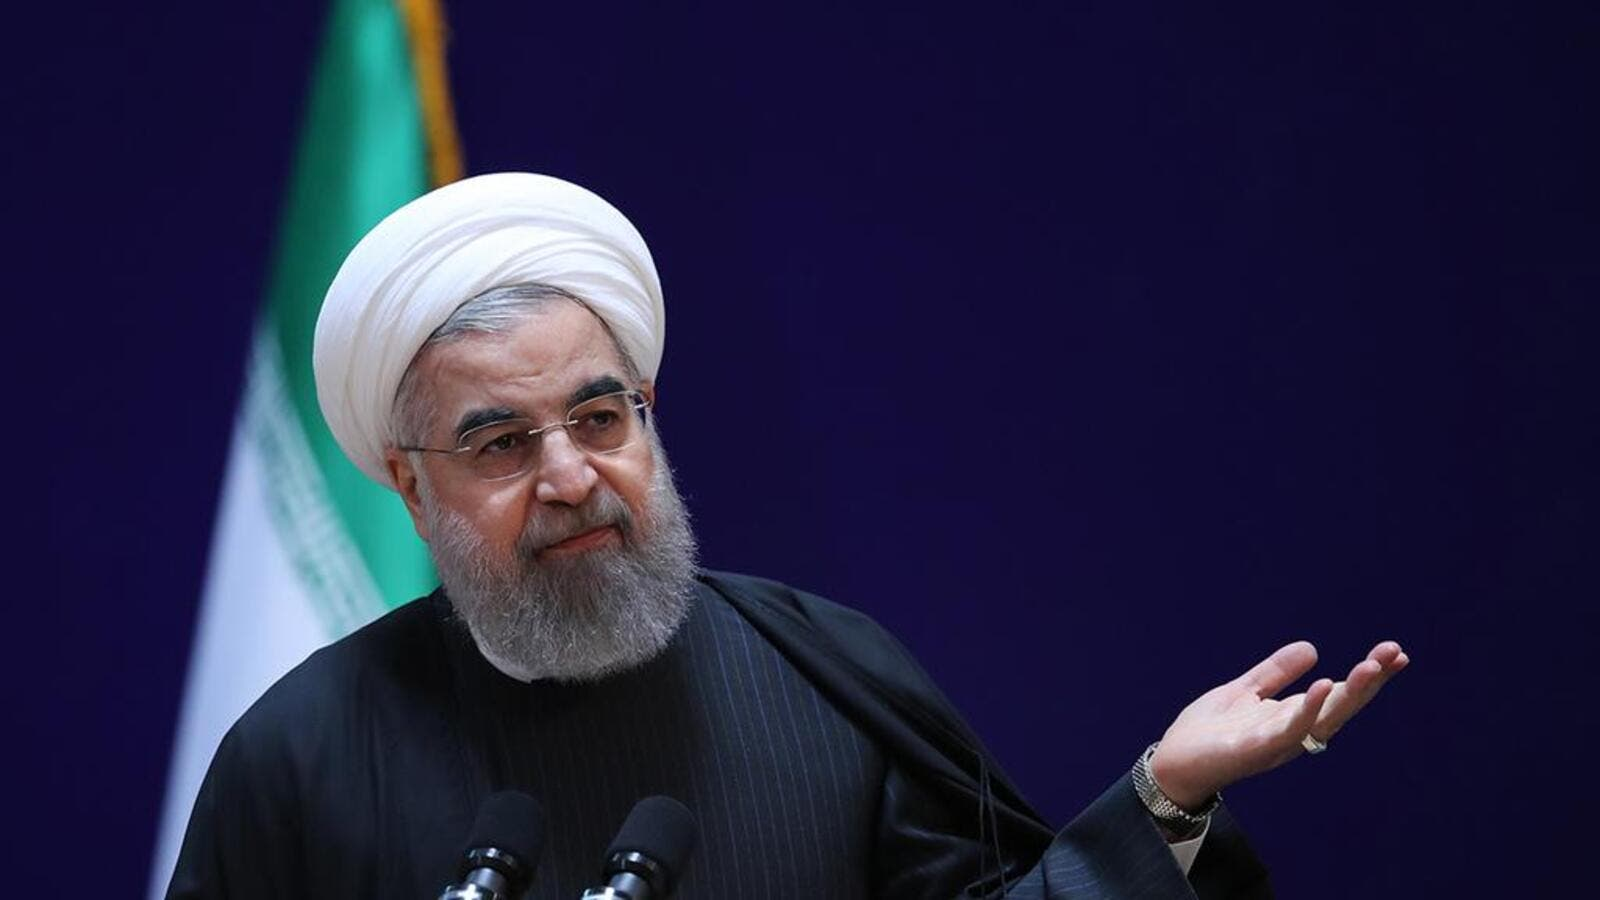 Iranian president Hassan Rouhani speaks at a conference in Tehran. (AFP/ File Photo)